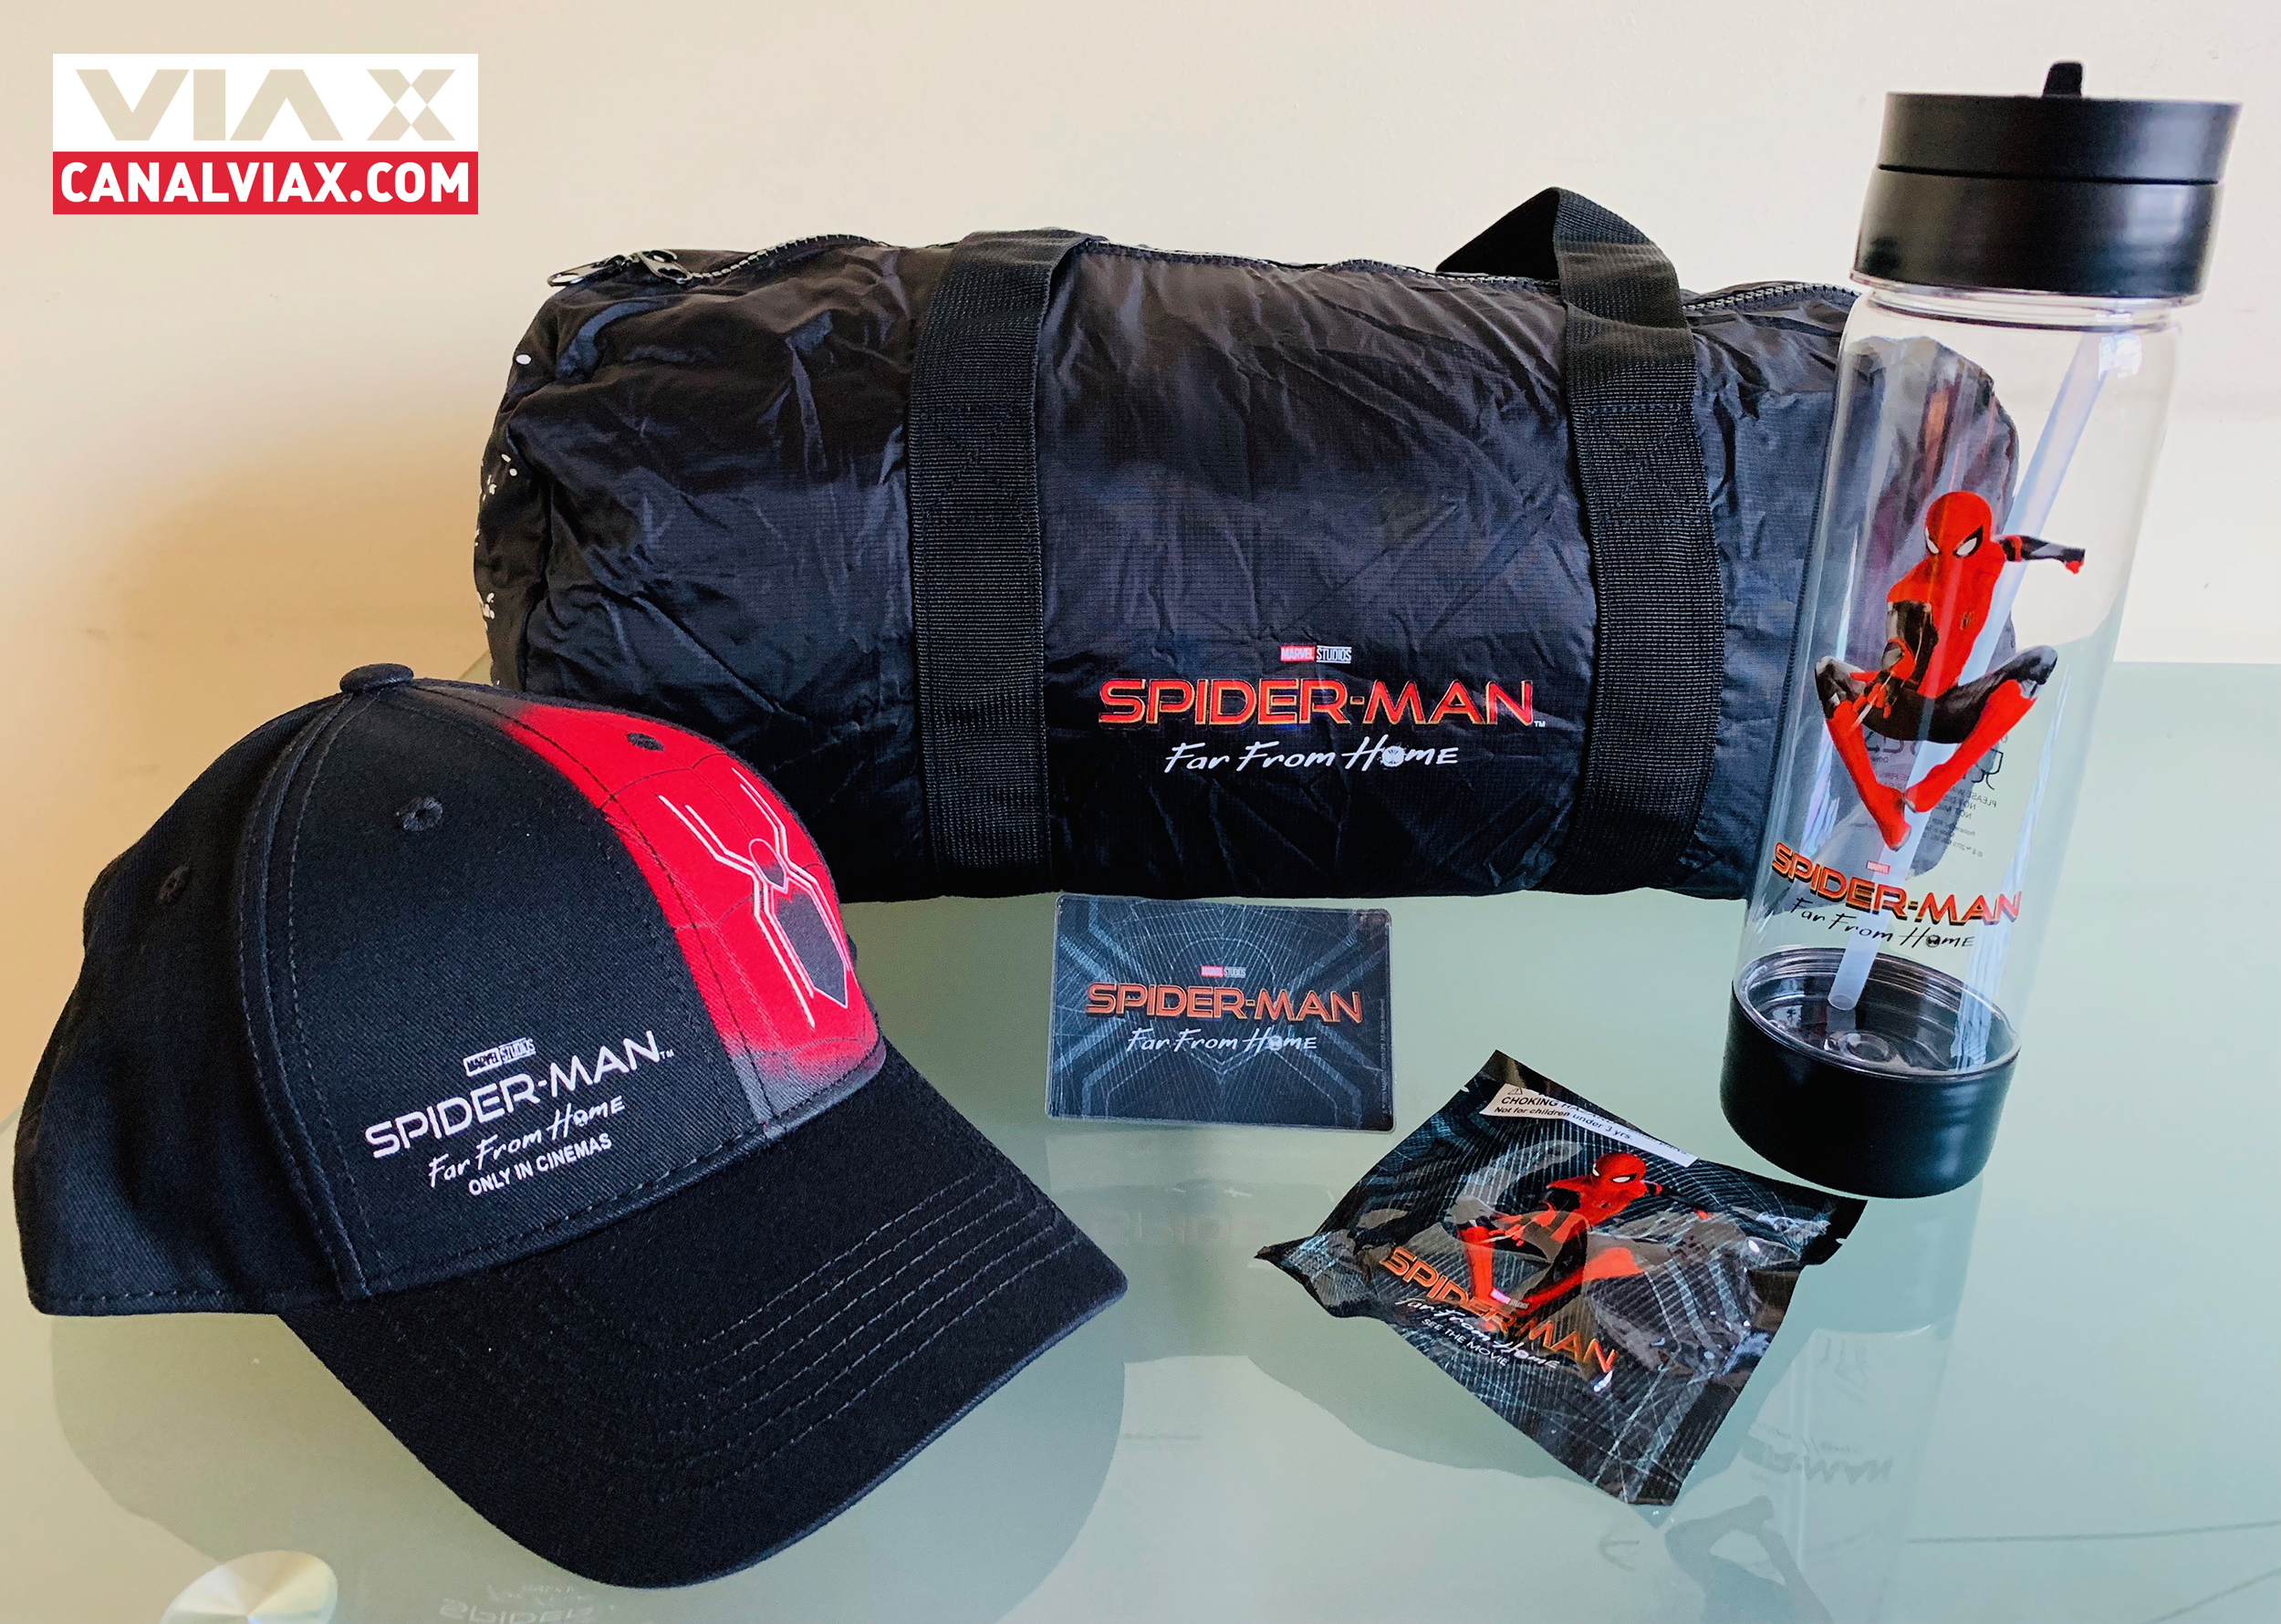 Participa y gana productos oficiales de Spiderman: Far From Home